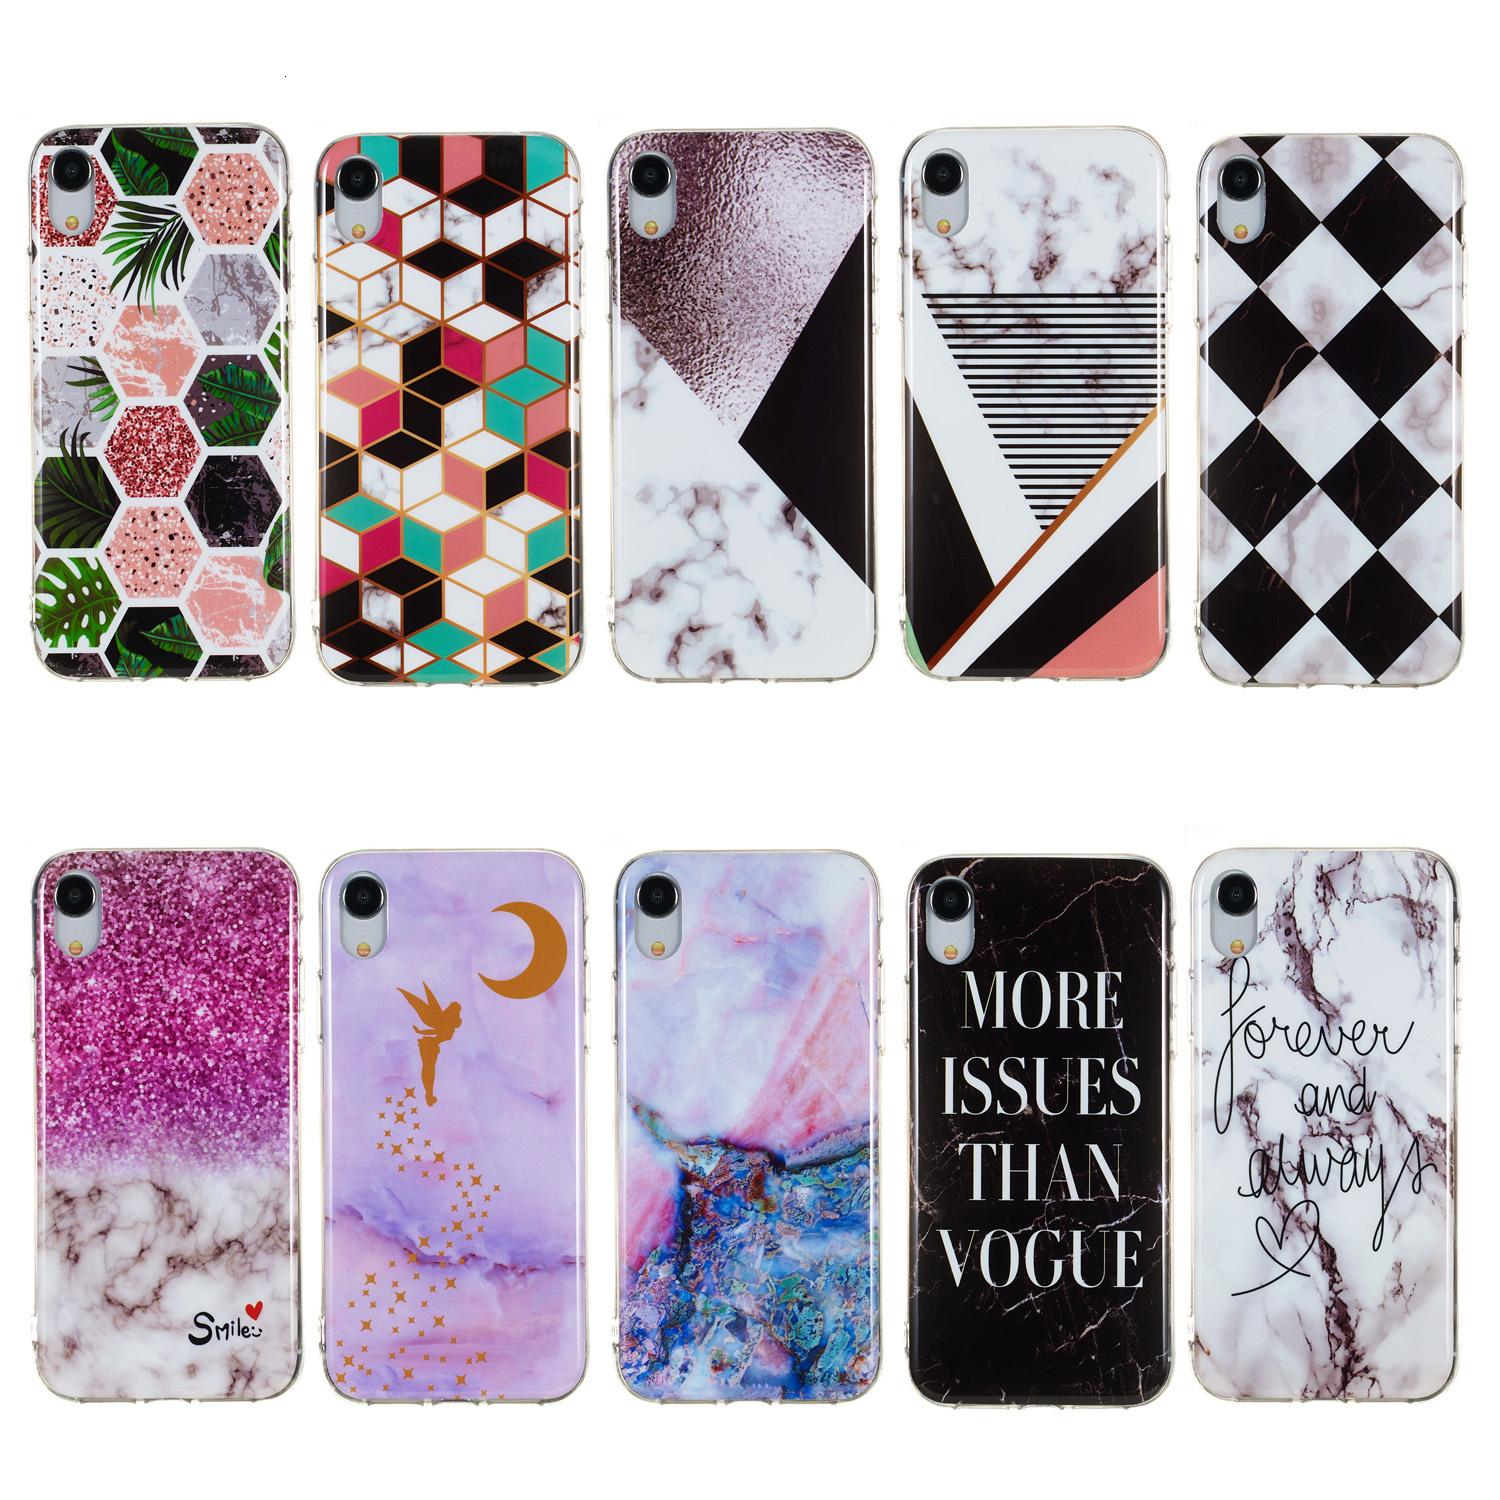 Plus XZ4 Marble Galaxy Case For Sam sung S10 Lite Huawei P30 Redmi 6 Pro Luxury Soft TPU IMD Color Hybrid Natural Stone